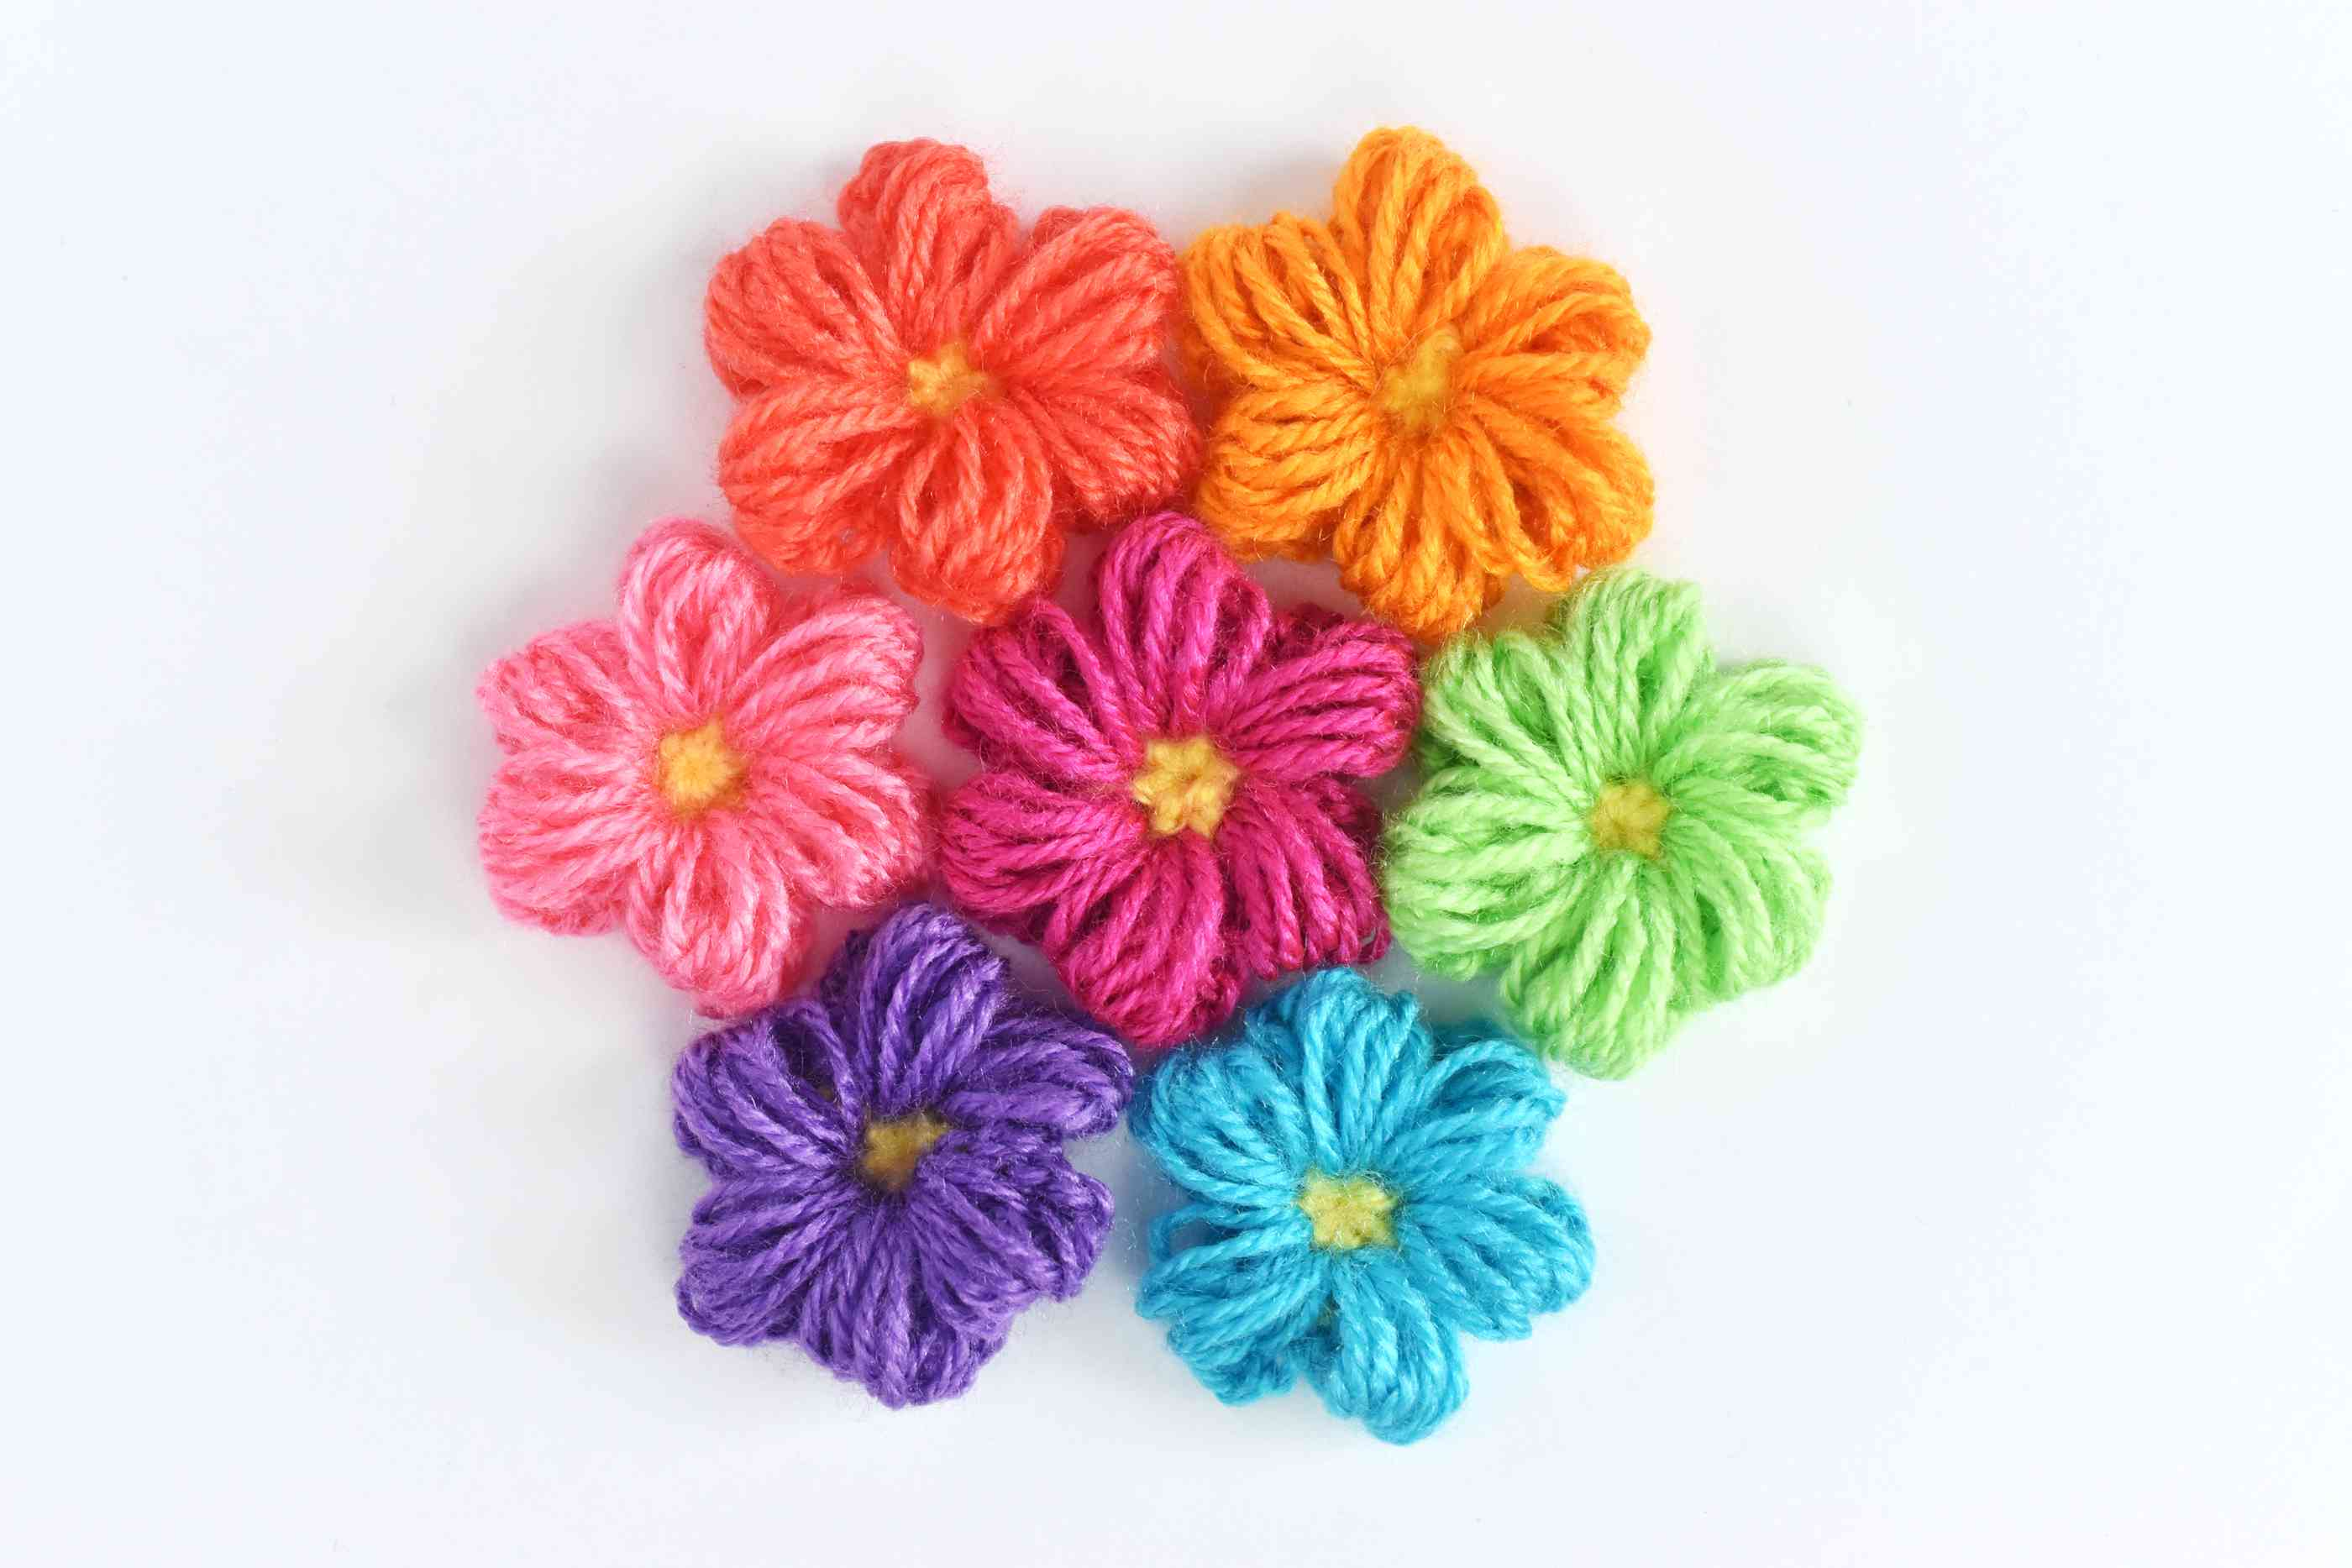 An assortment of colorful puff stitch crochet flowers